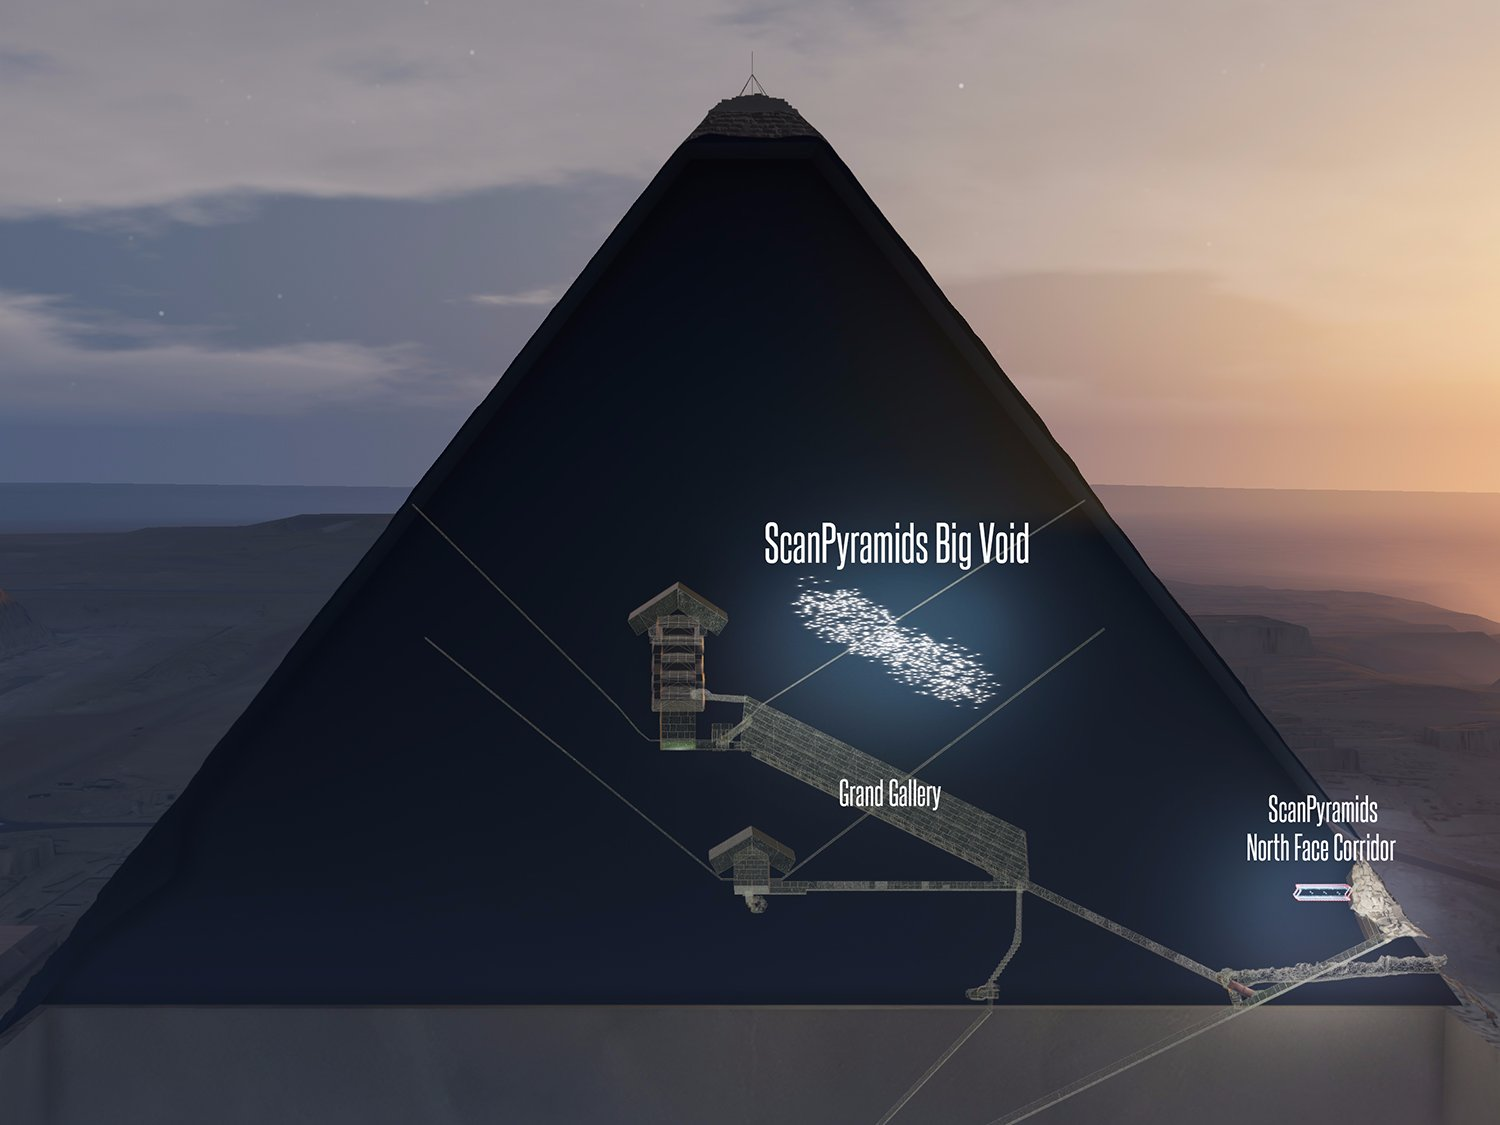 ScanPyramids-big-void.jpg